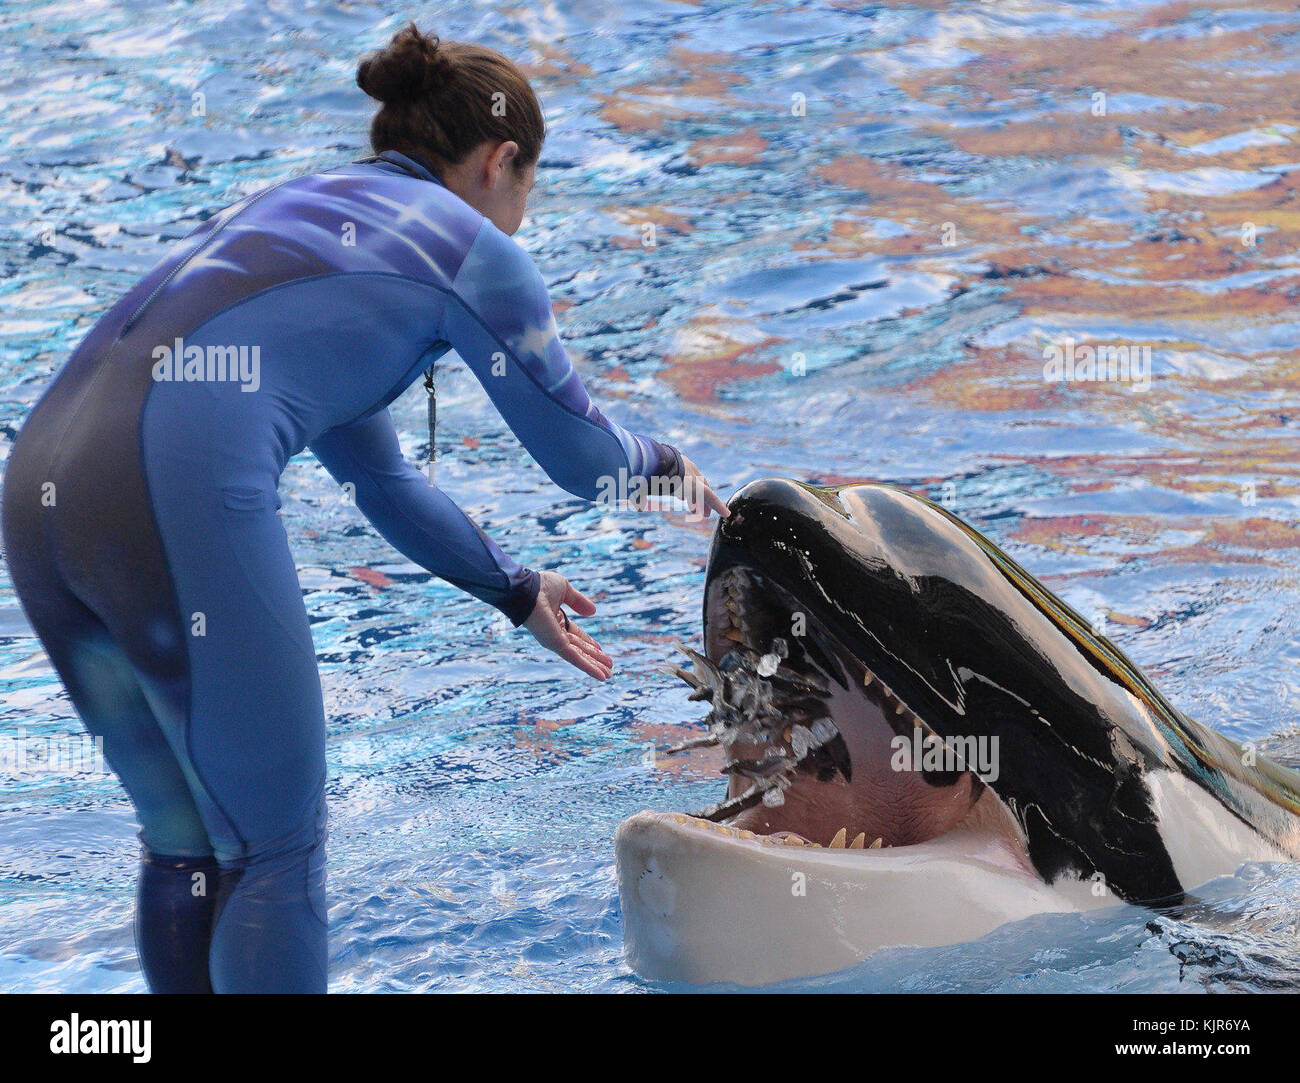 ORLANDO, FL - MARCH 19: Surrendering Thursday to a profound shift in how people feel about using animals for entertainment, - Stock Image